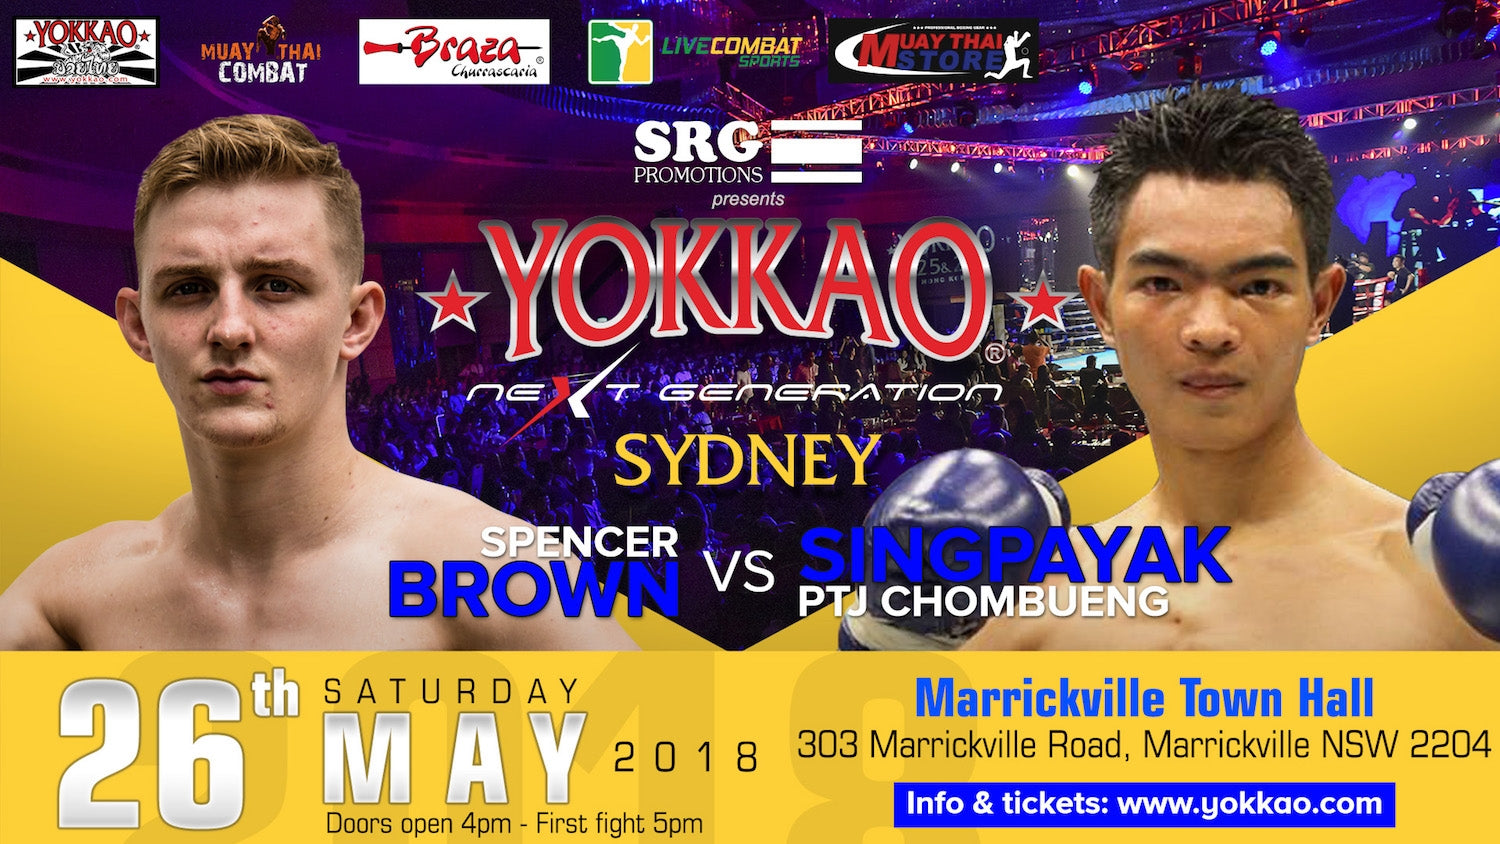 YOKKAO Next Generation Sydney